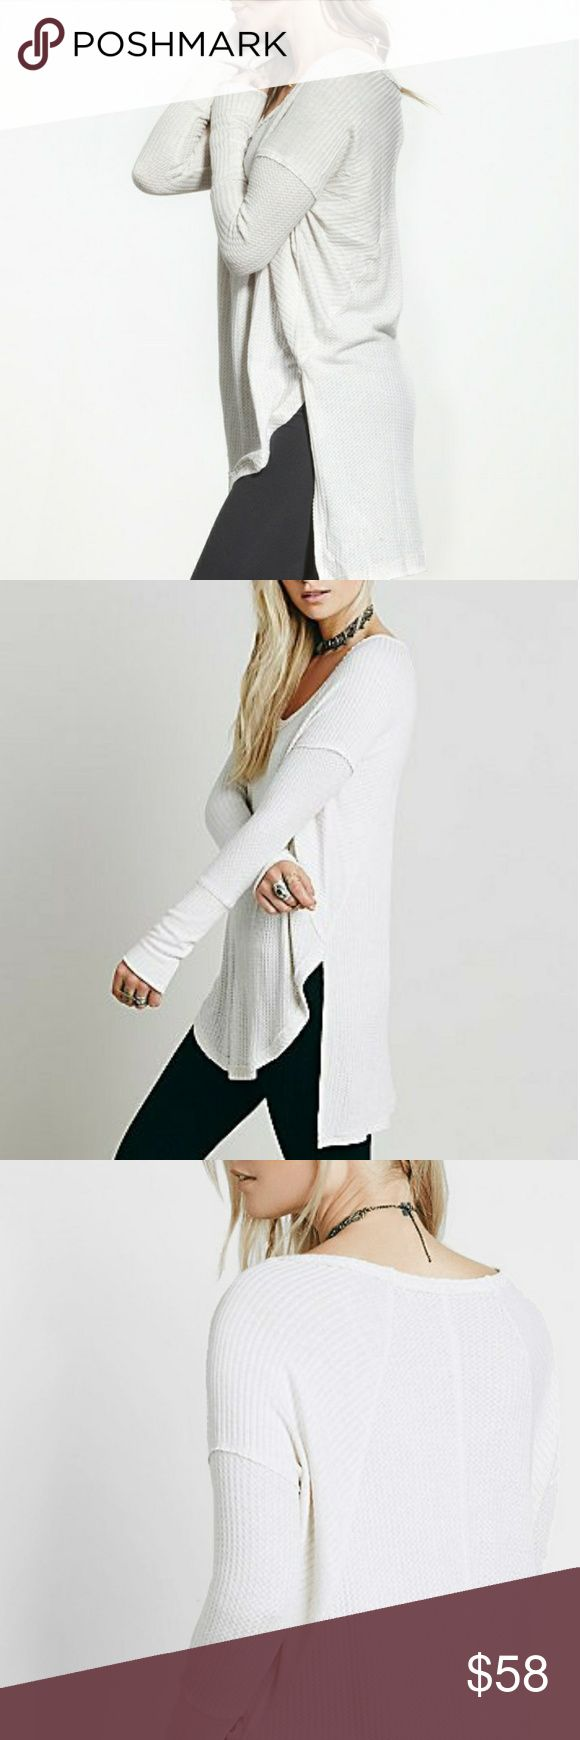 NIP Free People Drippy Ventura Thermal So-soft drippy thermal in a yummy textured stretch fabric. Swing silhouette with subtle high-low hem and side vents. Raw seams and wide ribbed cuffs in Oatmeal.   Brand New in Package ~ no flaws.   Save an extra 20% with a bundle discount.   Ships next business day. Free People Tops Tees - Long Sleeve